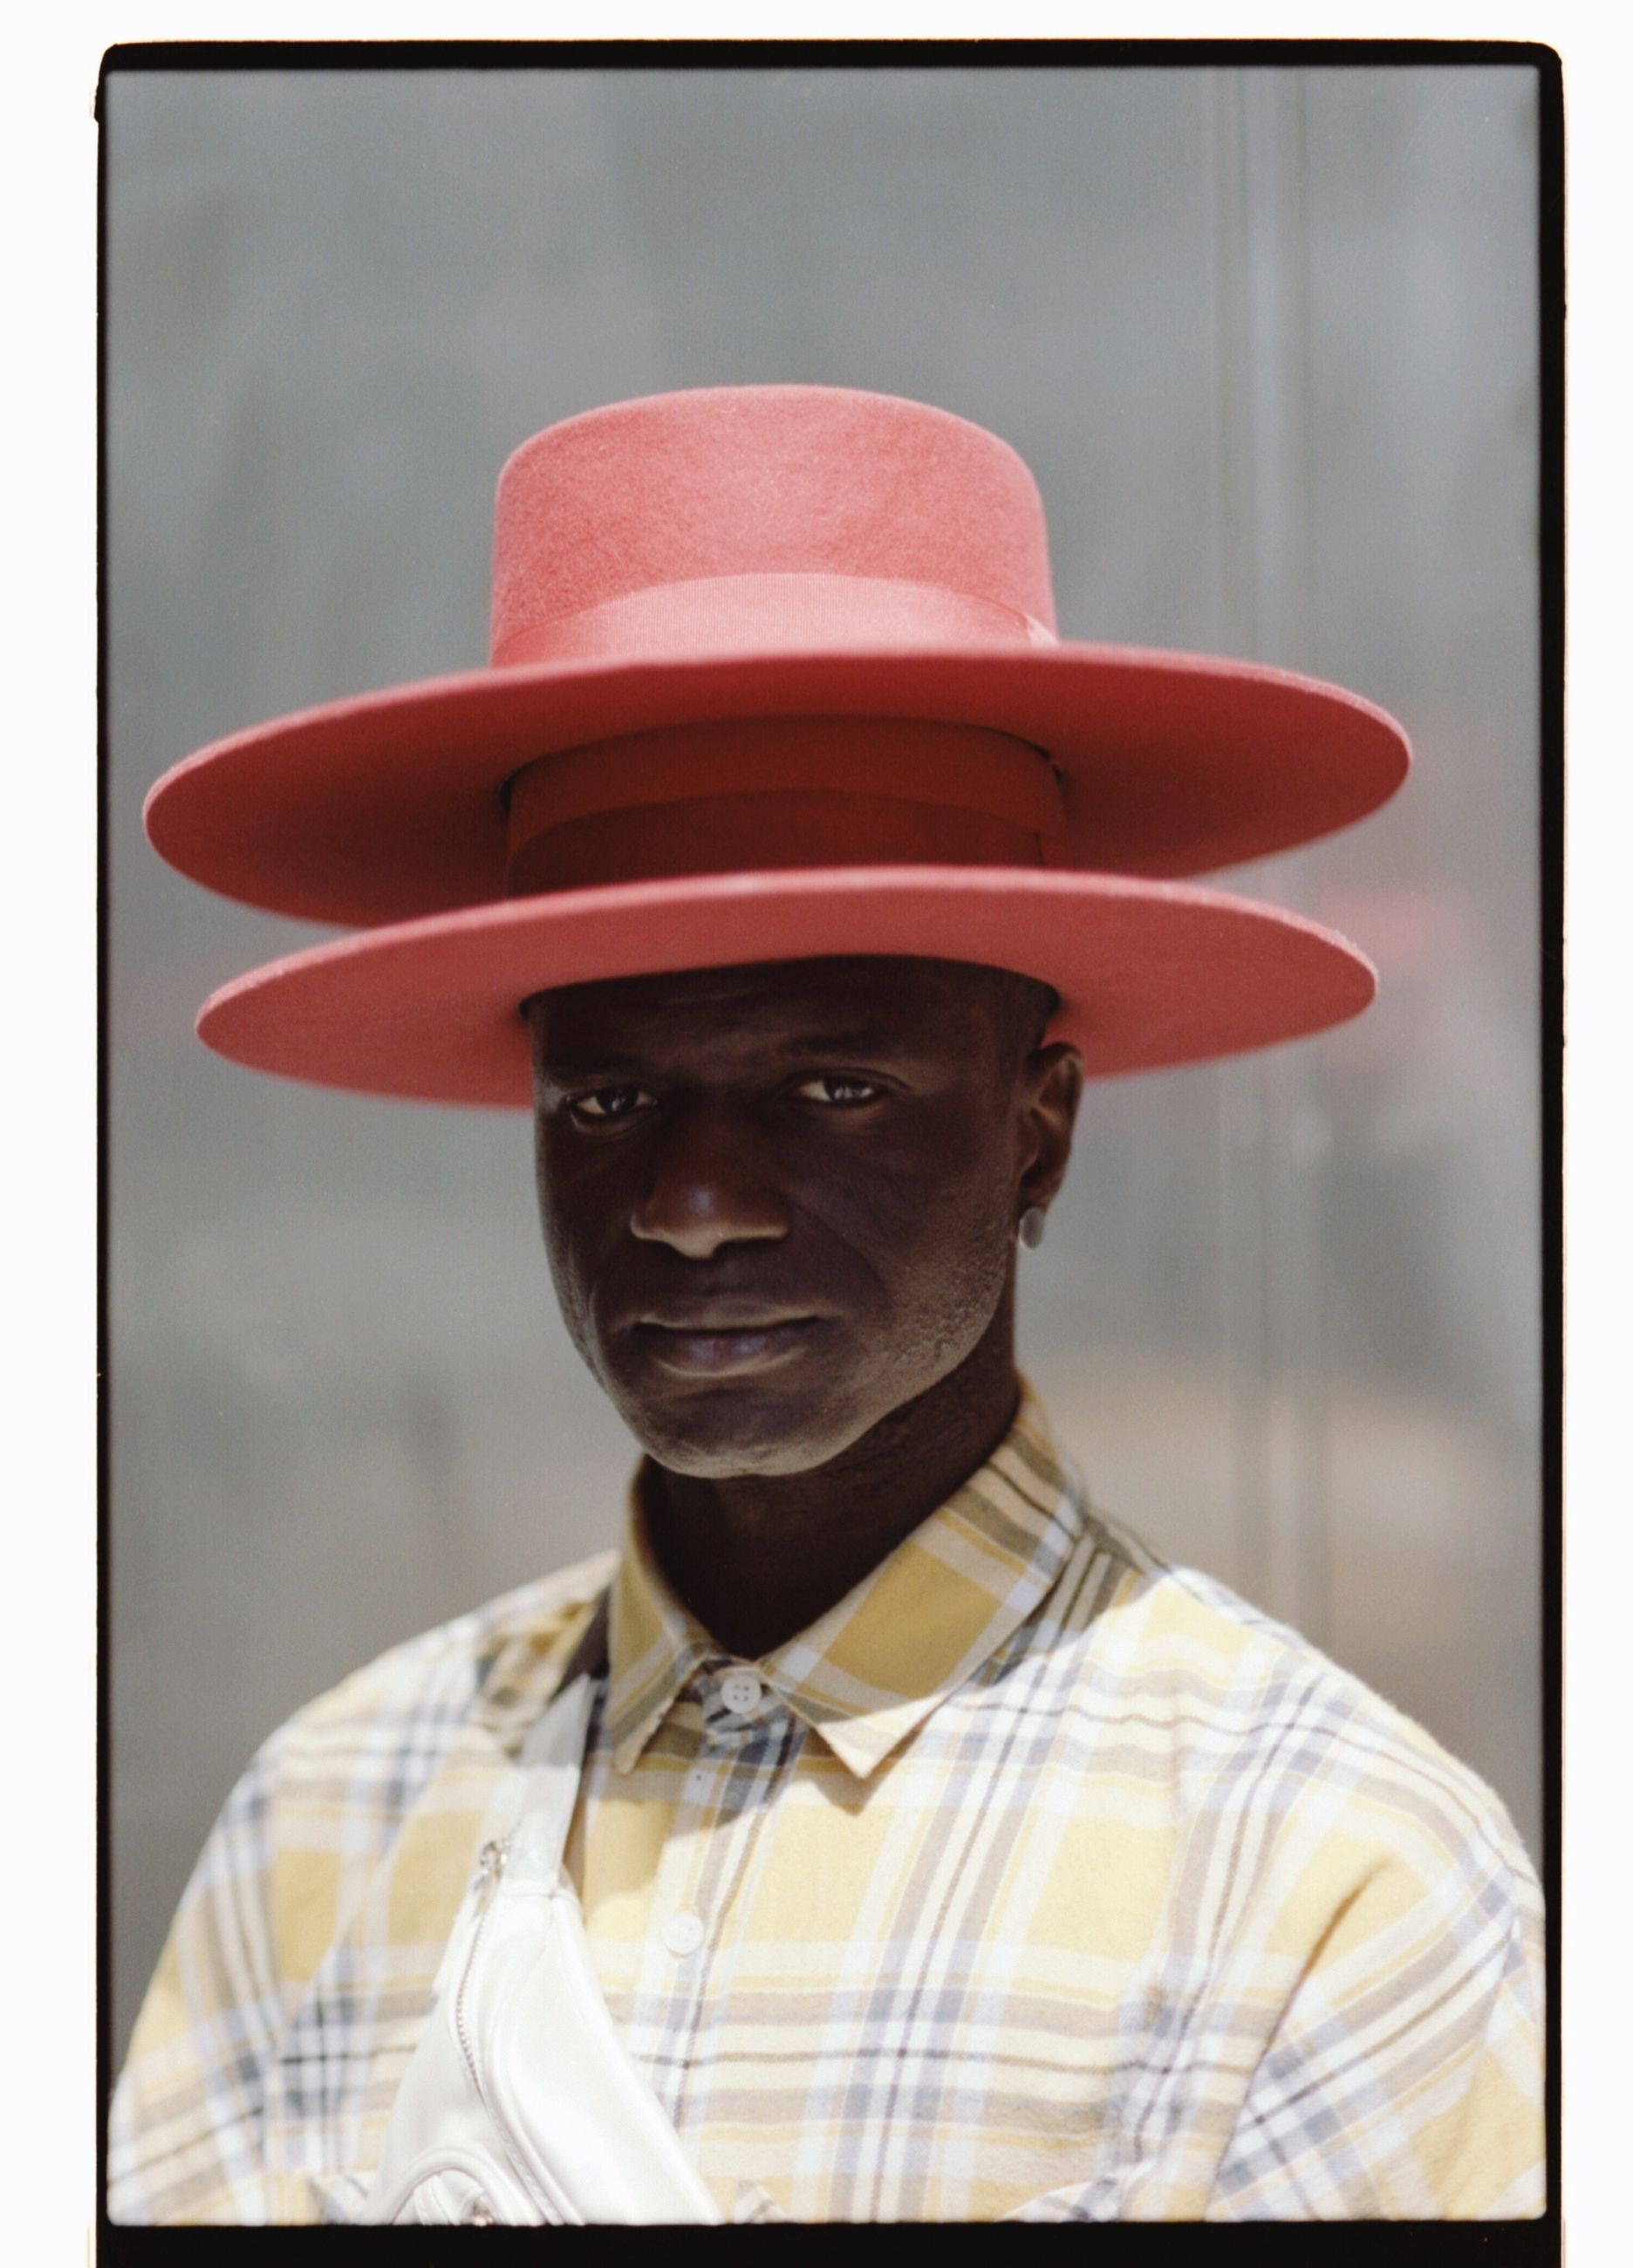 portrait, one person, hat, looking at camera, men, headshot, real people, clothing, young men, front view, lifestyles, males, adult, standing, transfer print, focus on foreground, leisure activity, indoors, young adult, mature men